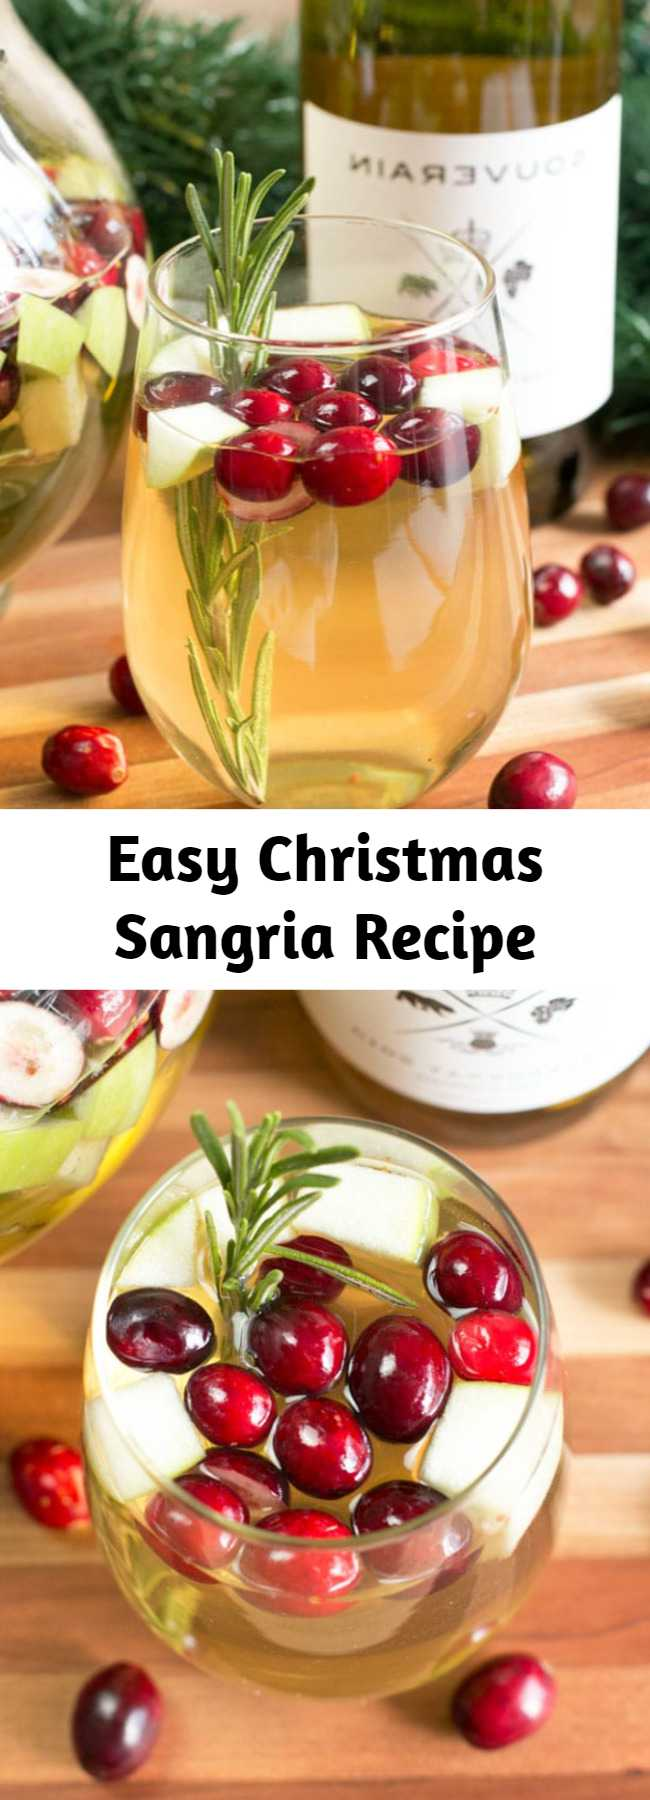 Easy Christmas Sangria Recipe - Rosemary, cranberries, and apple make this sangria the perfect Christmas drink that goes with any holiday meal!